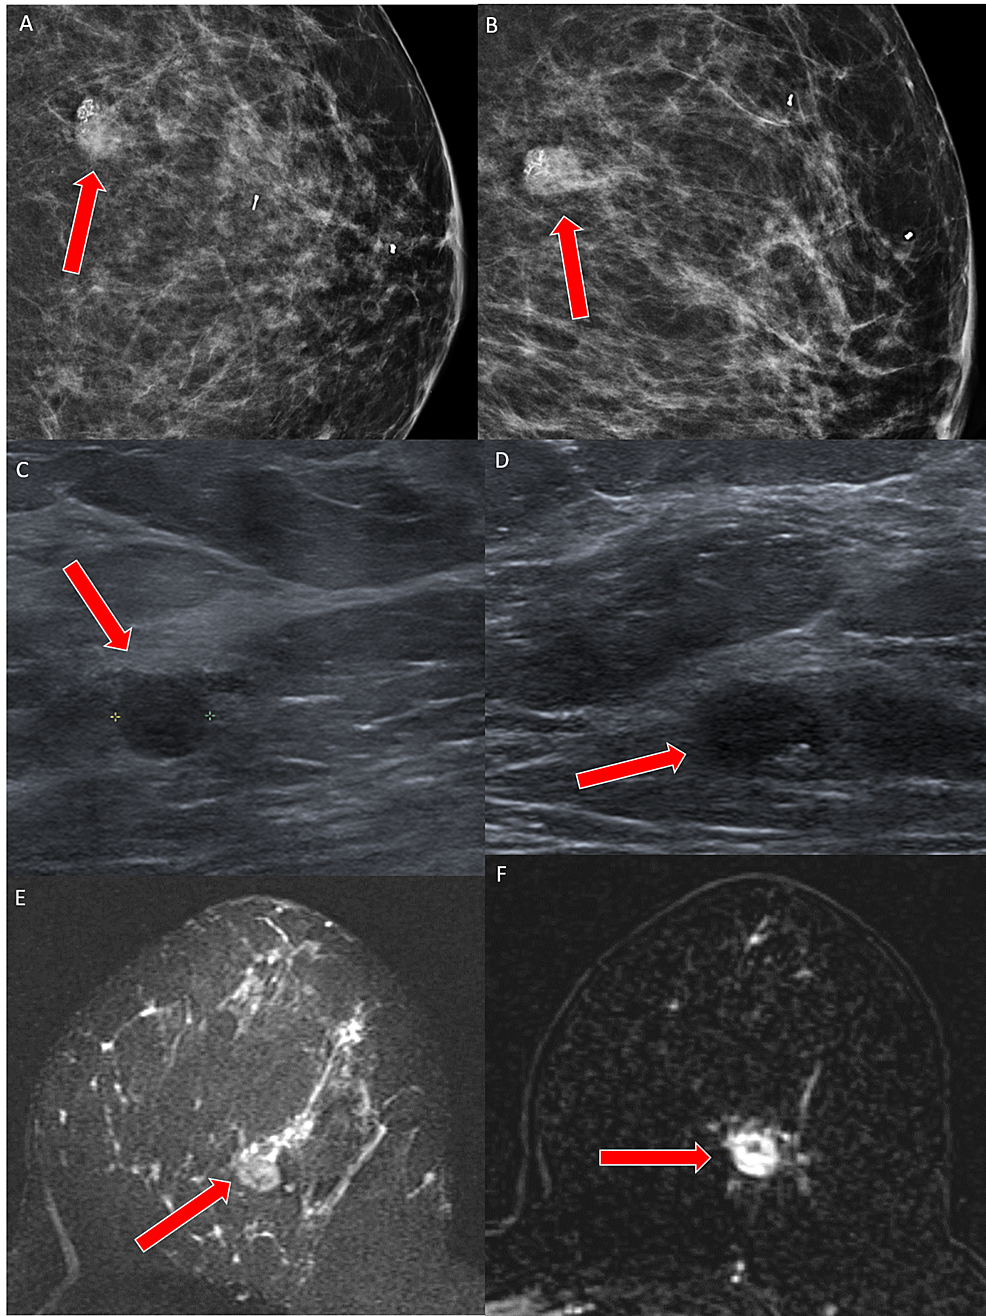 Case-3-imaging-findings